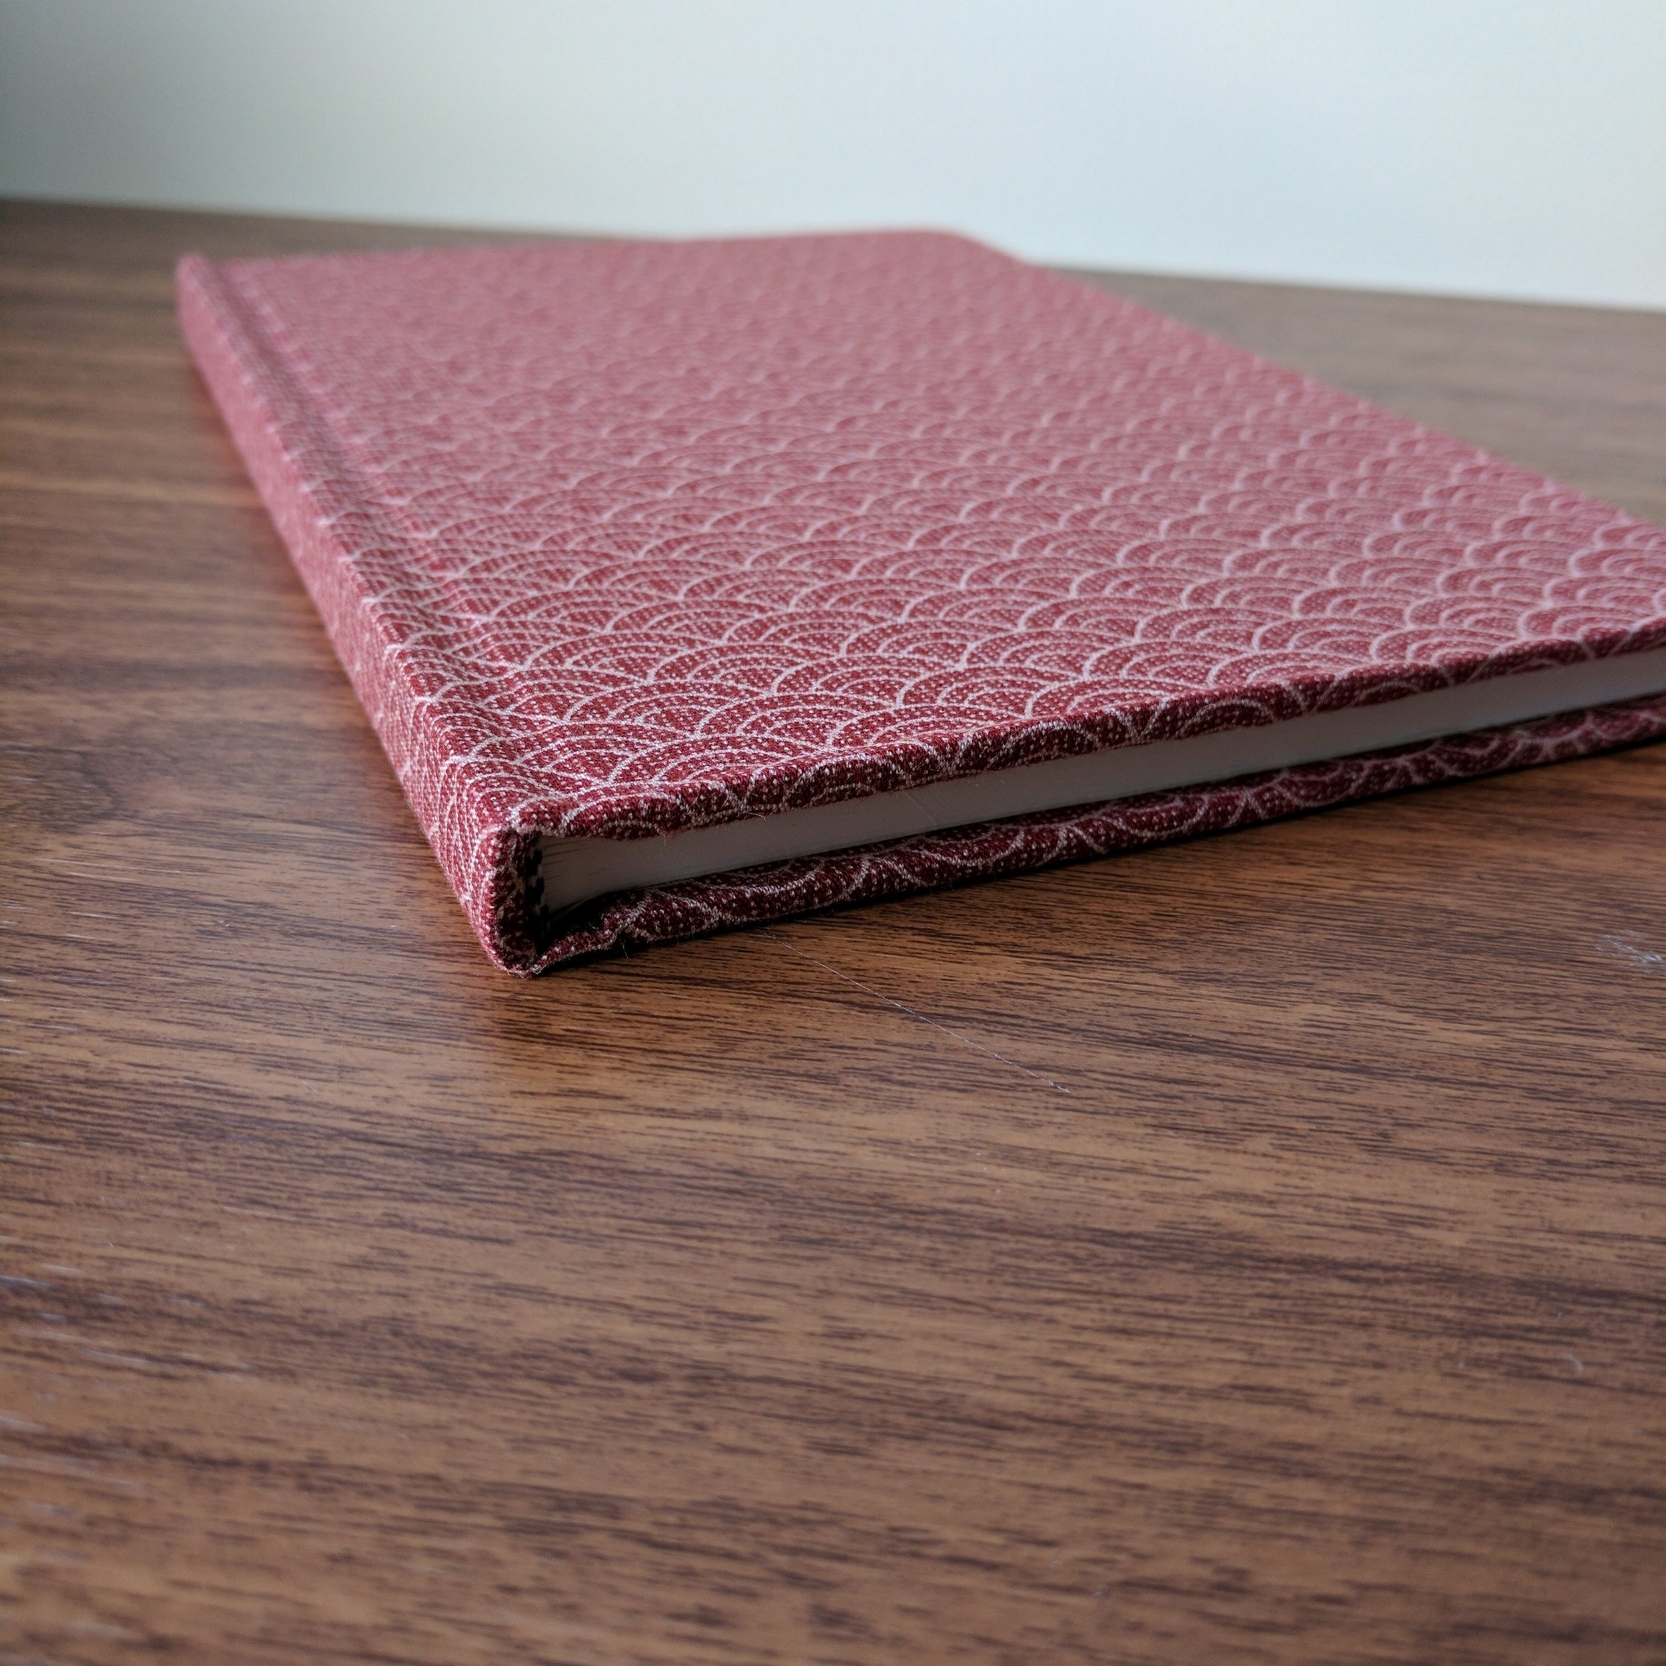 "Seighaia (""Wave"") pattern in Enji fabric. This thin journal actually has 200 sheets of paper."